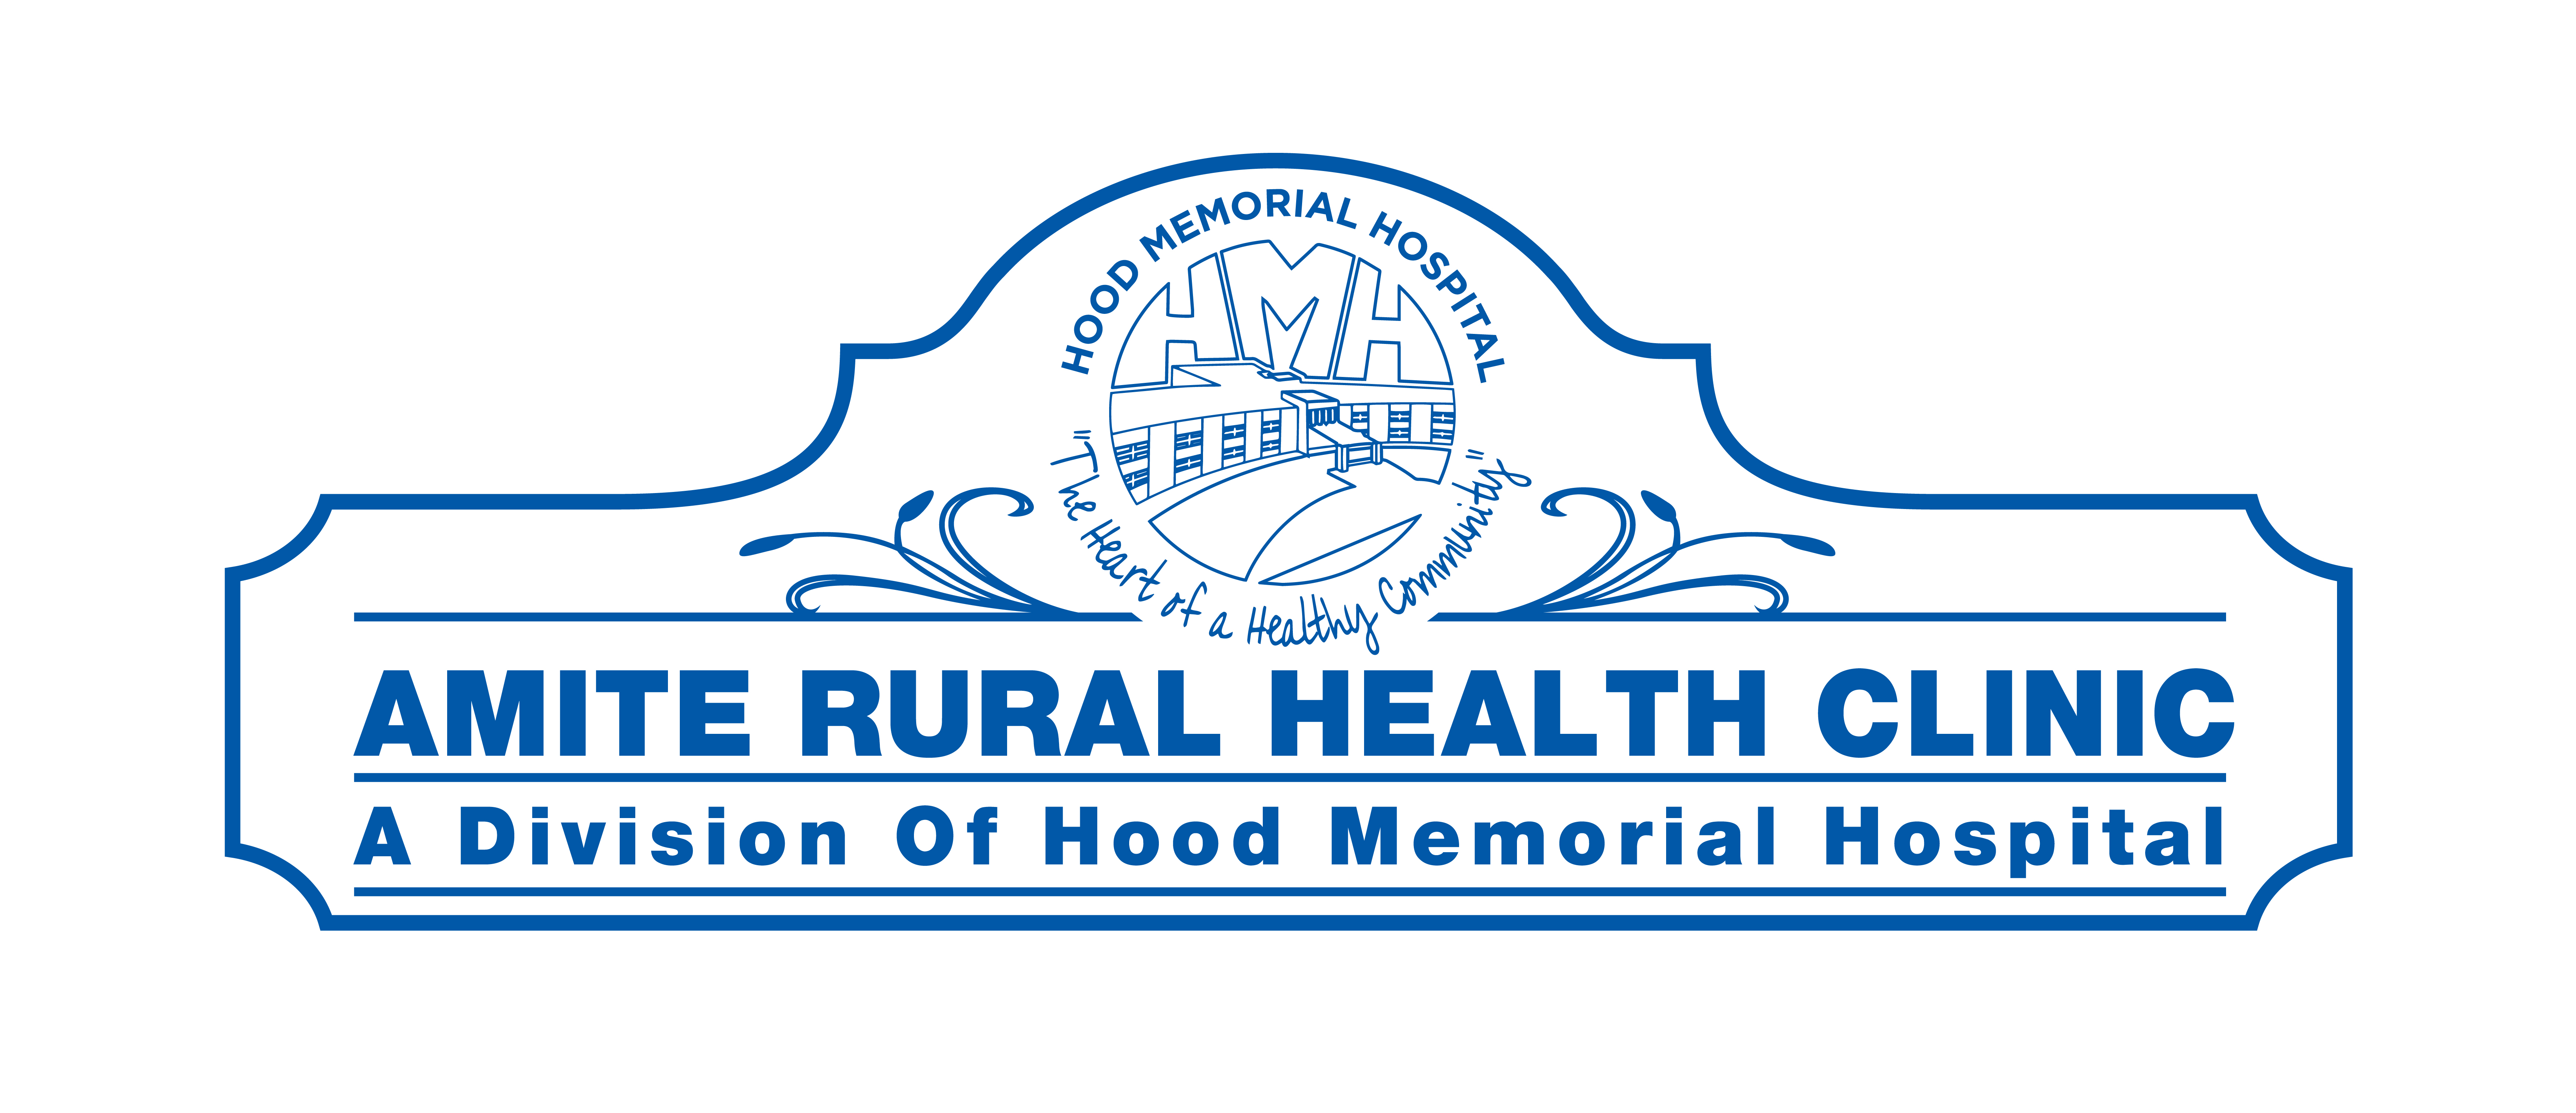 Amite Rural Health Clinic